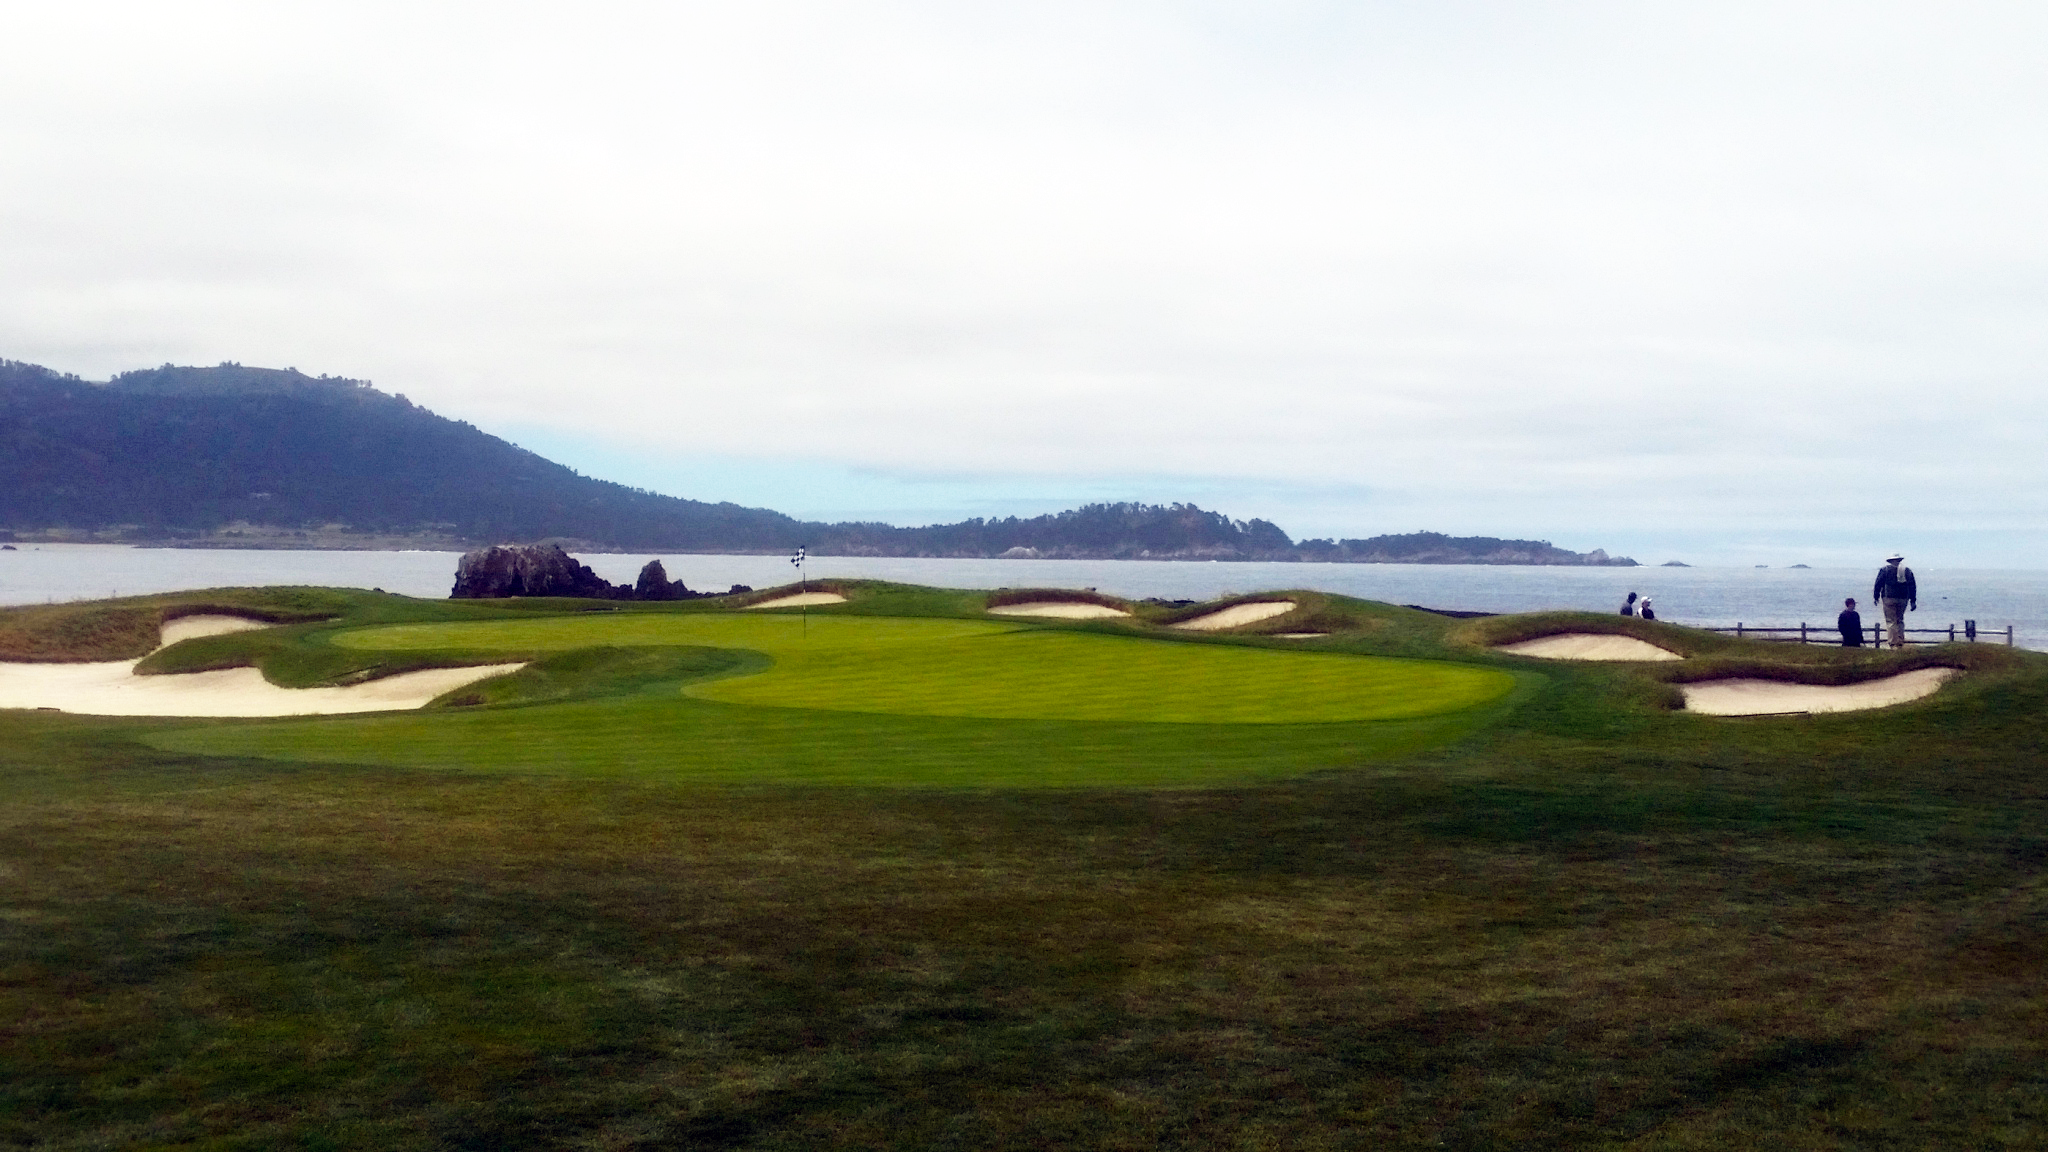 stillwater cove golf course